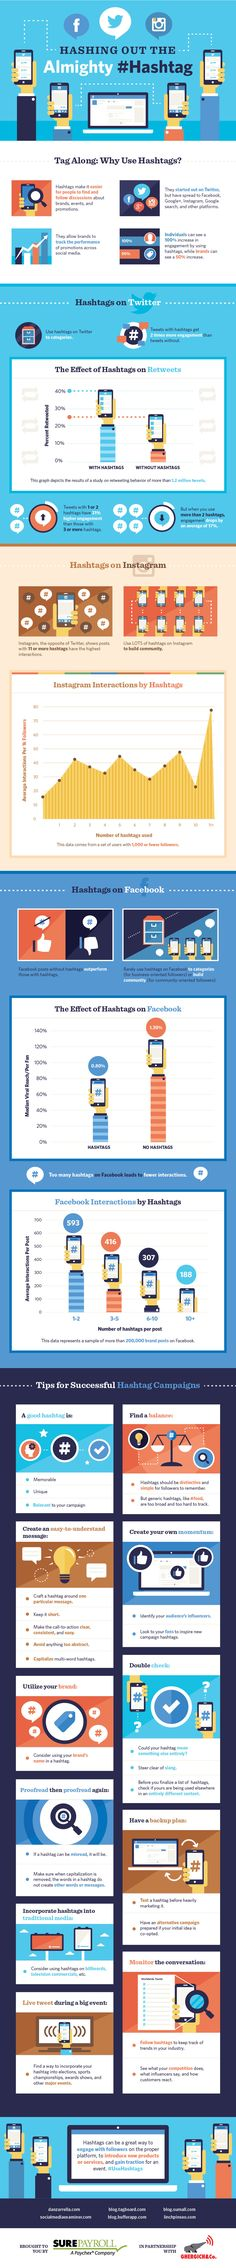 Hashing Out the Almighty Hashtag [INFOGRAPHIC] | Social Media Today